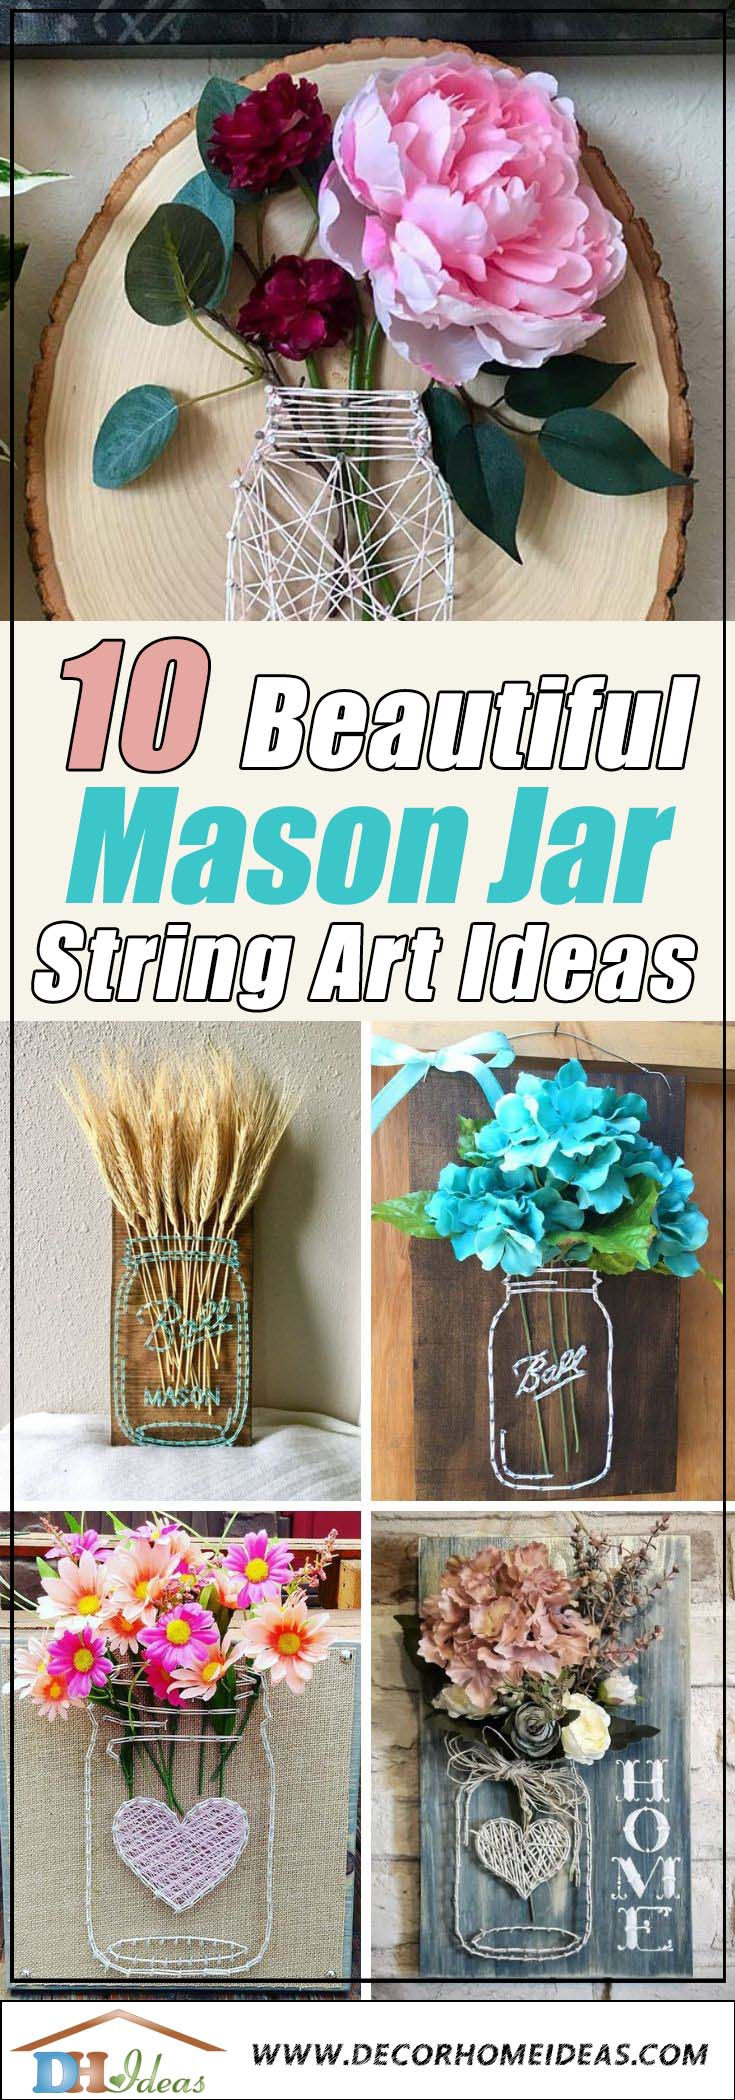 Best Mason Jar String Art Ideas #stringart #masonjar #decorhomeideas